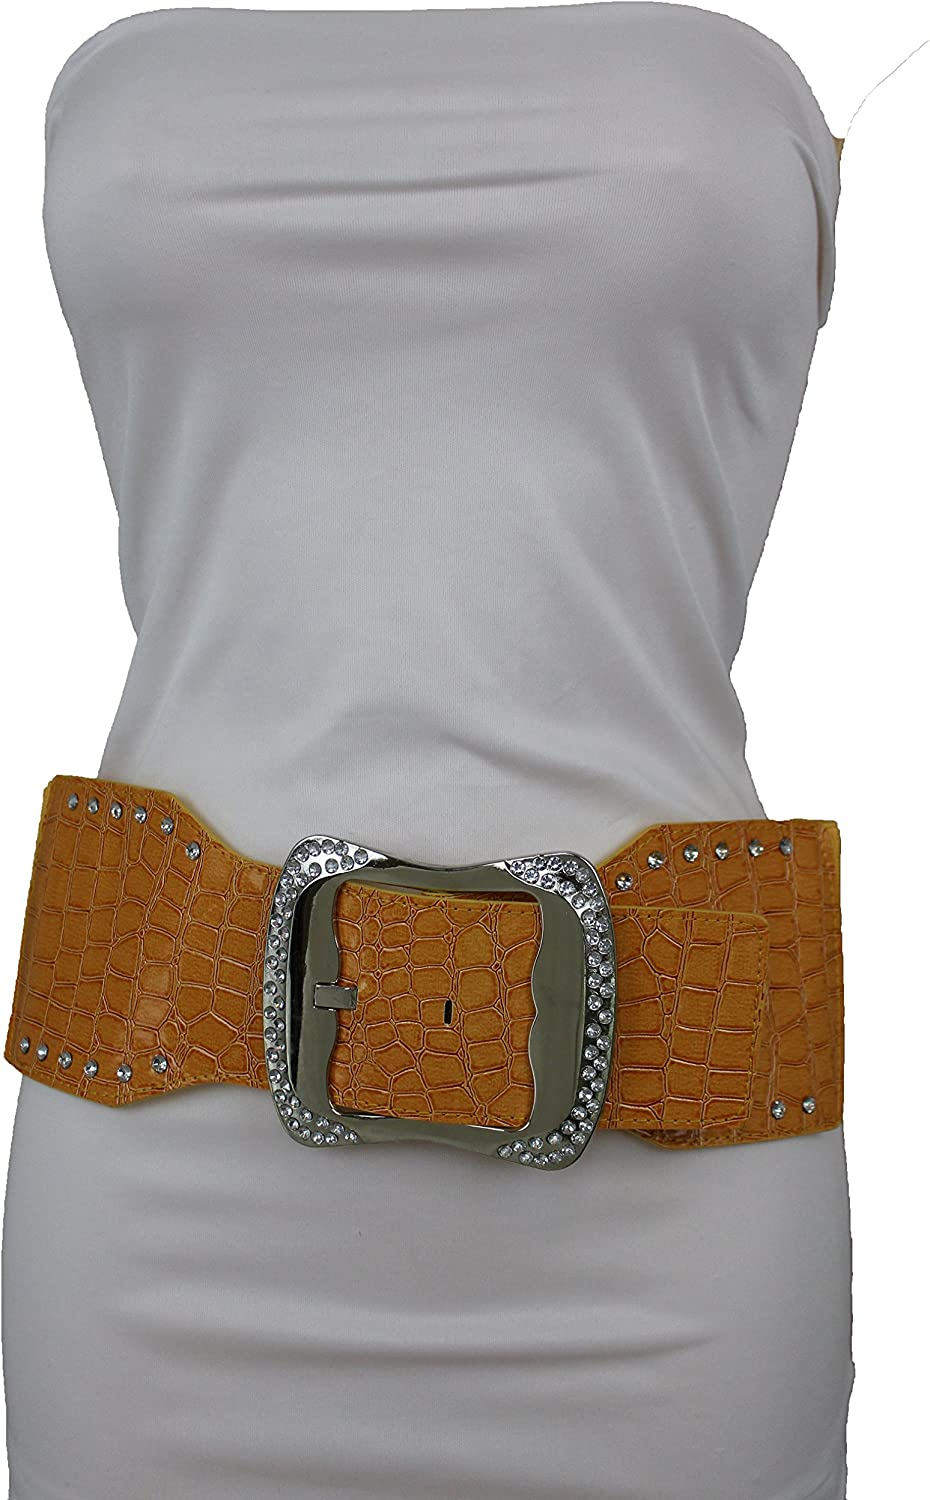 Women Pink Faux Leather Wide Casual Fashion Fun Belt Big Silver Metal Buckle S M